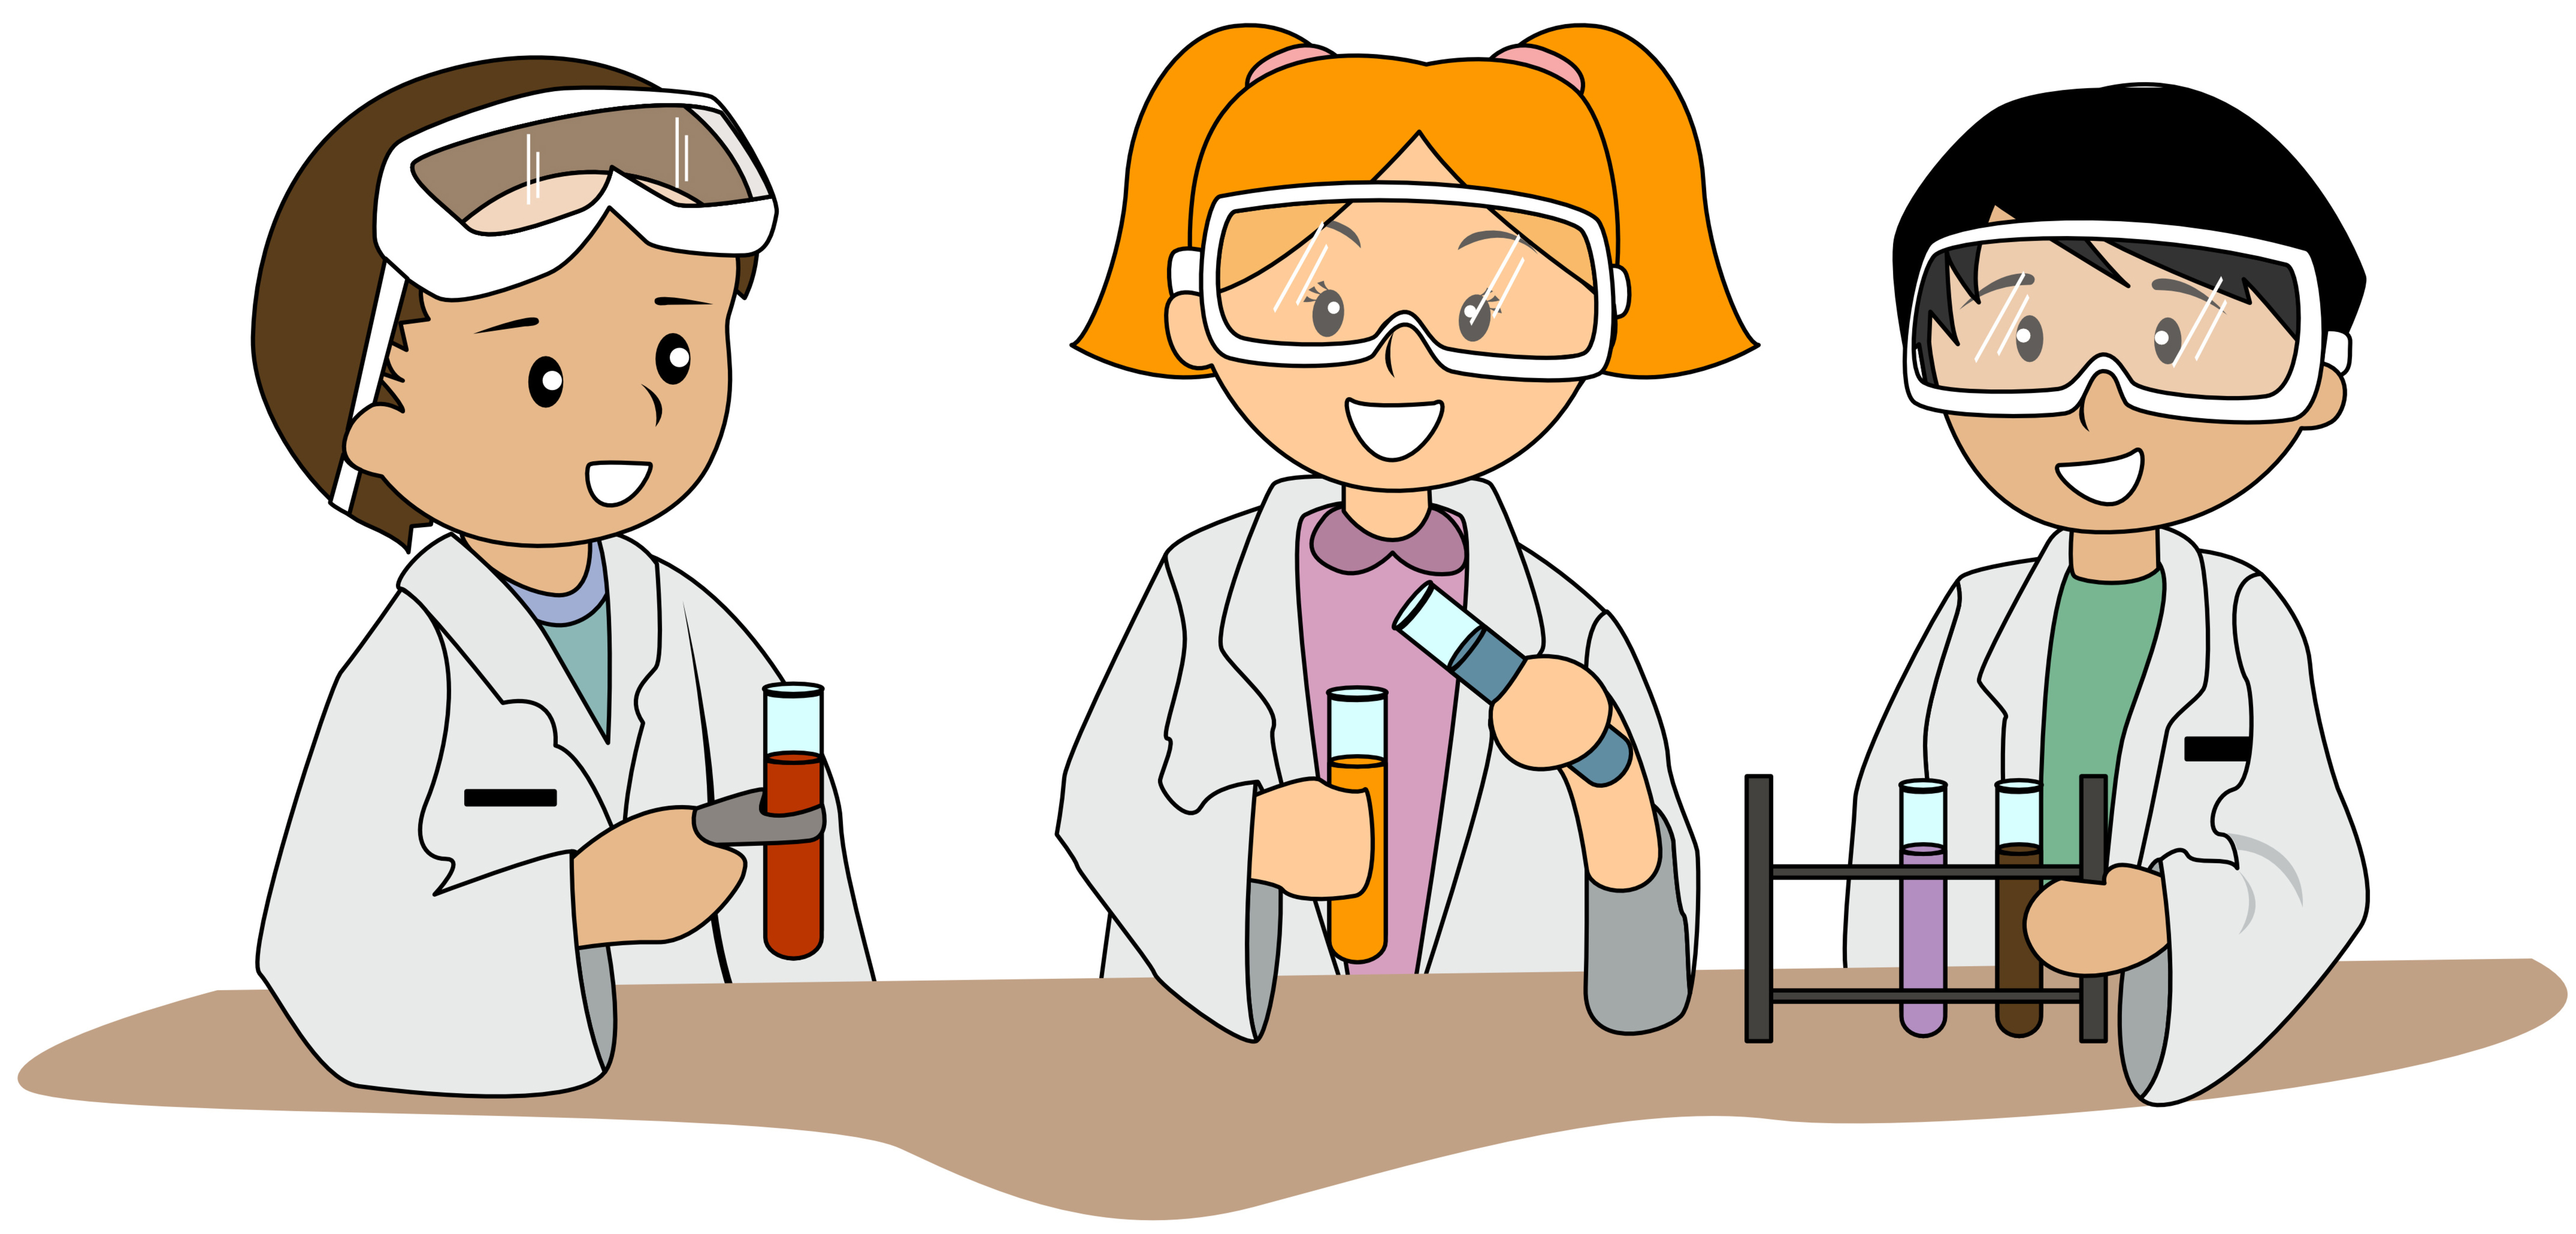 Science clipart month For Download  Kids Pictures